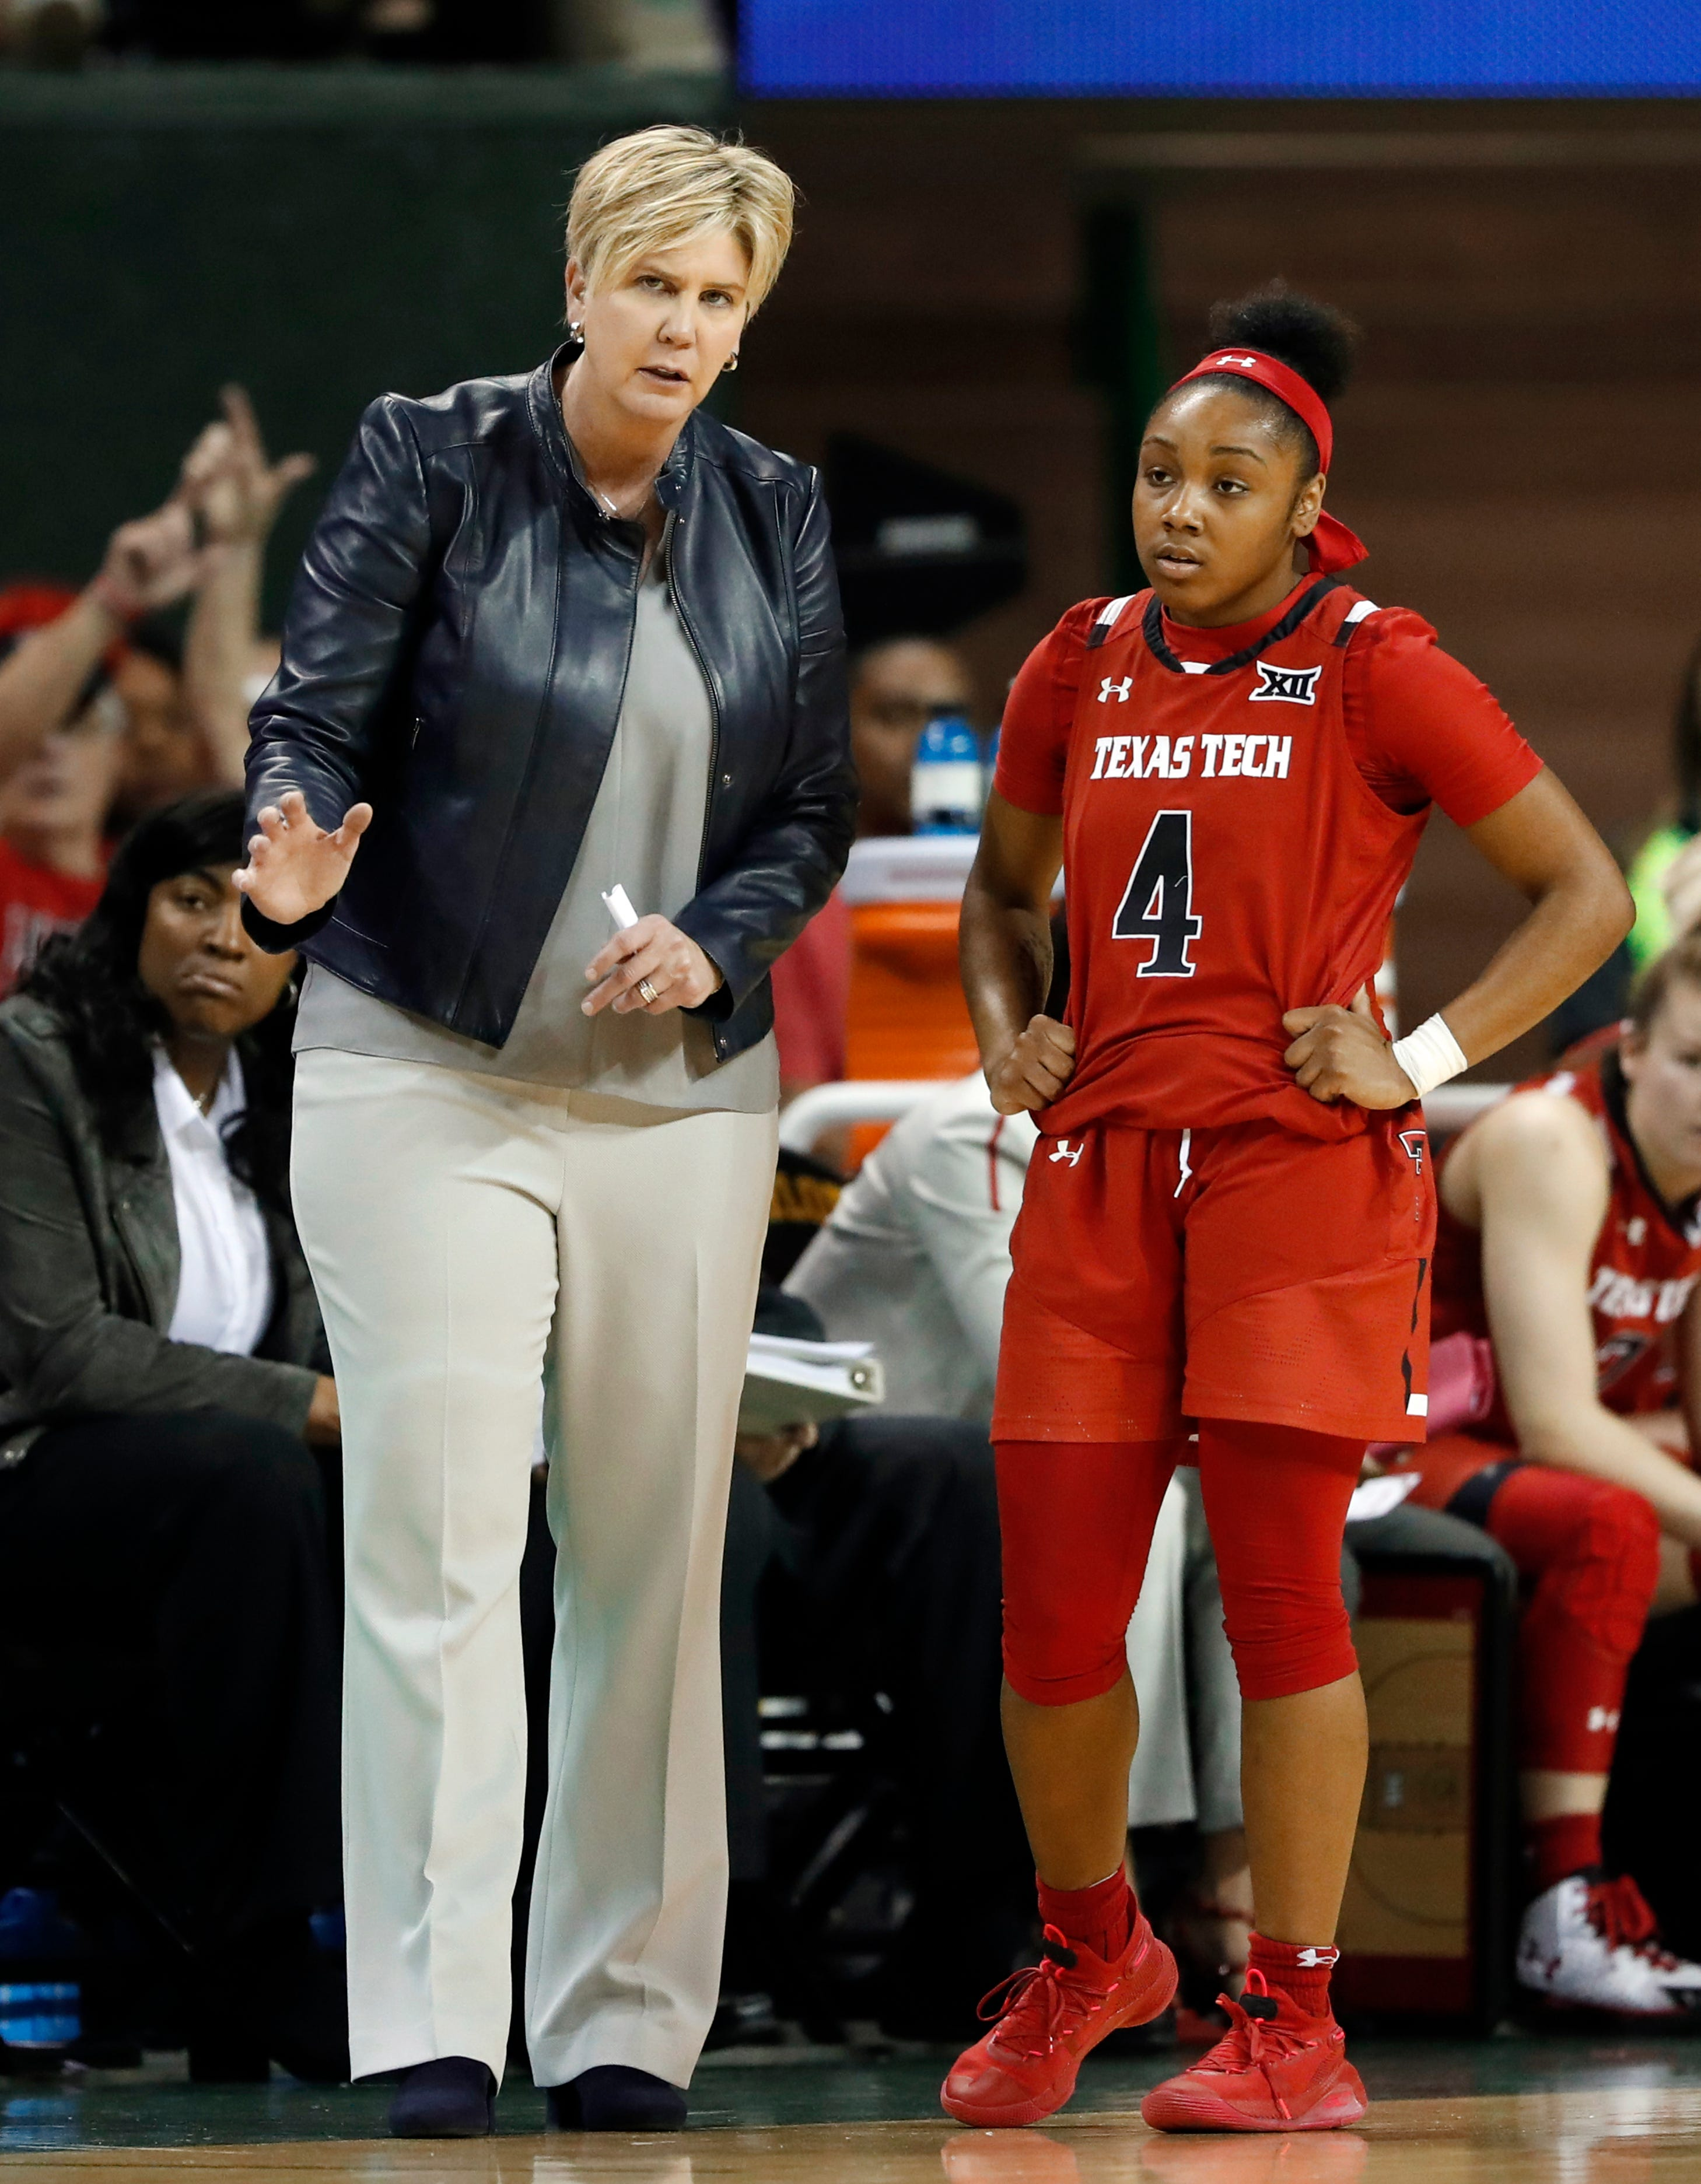 Marlene Stollings has a career record of 164–117 as coach at five schools, including 31-27 at Texas Tech.